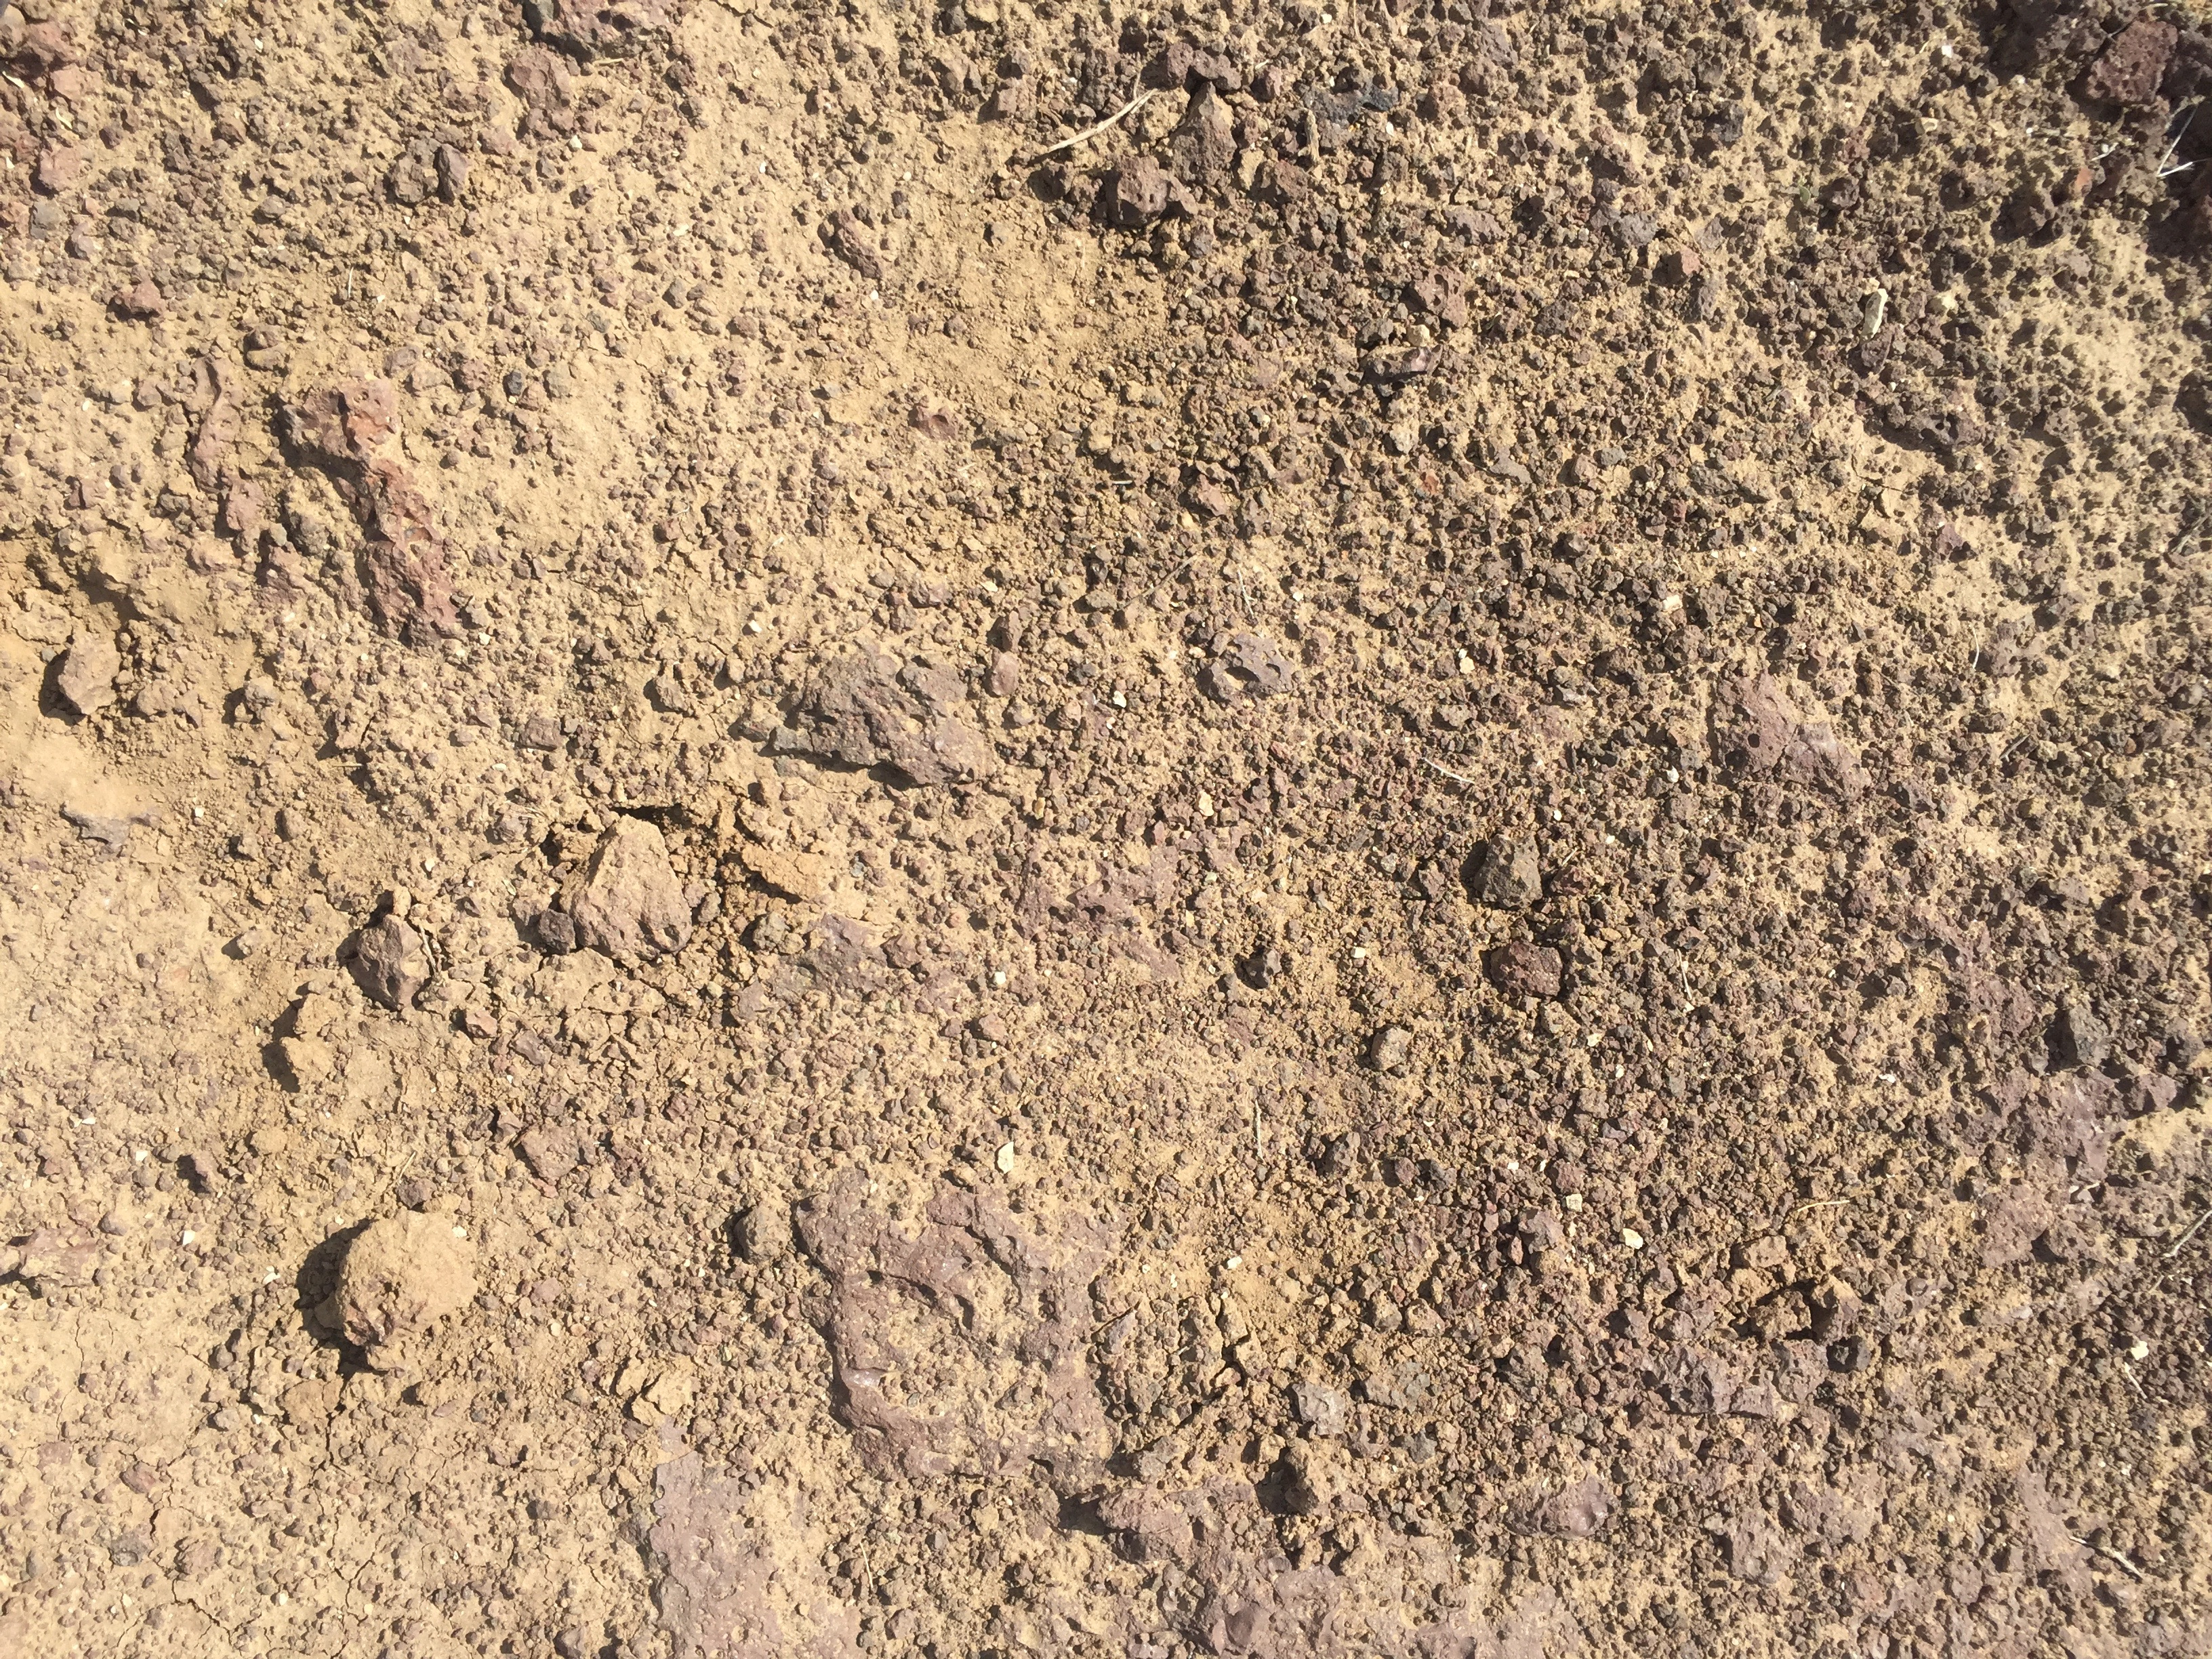 Light brown dried up earth with bits of red volcanic rock